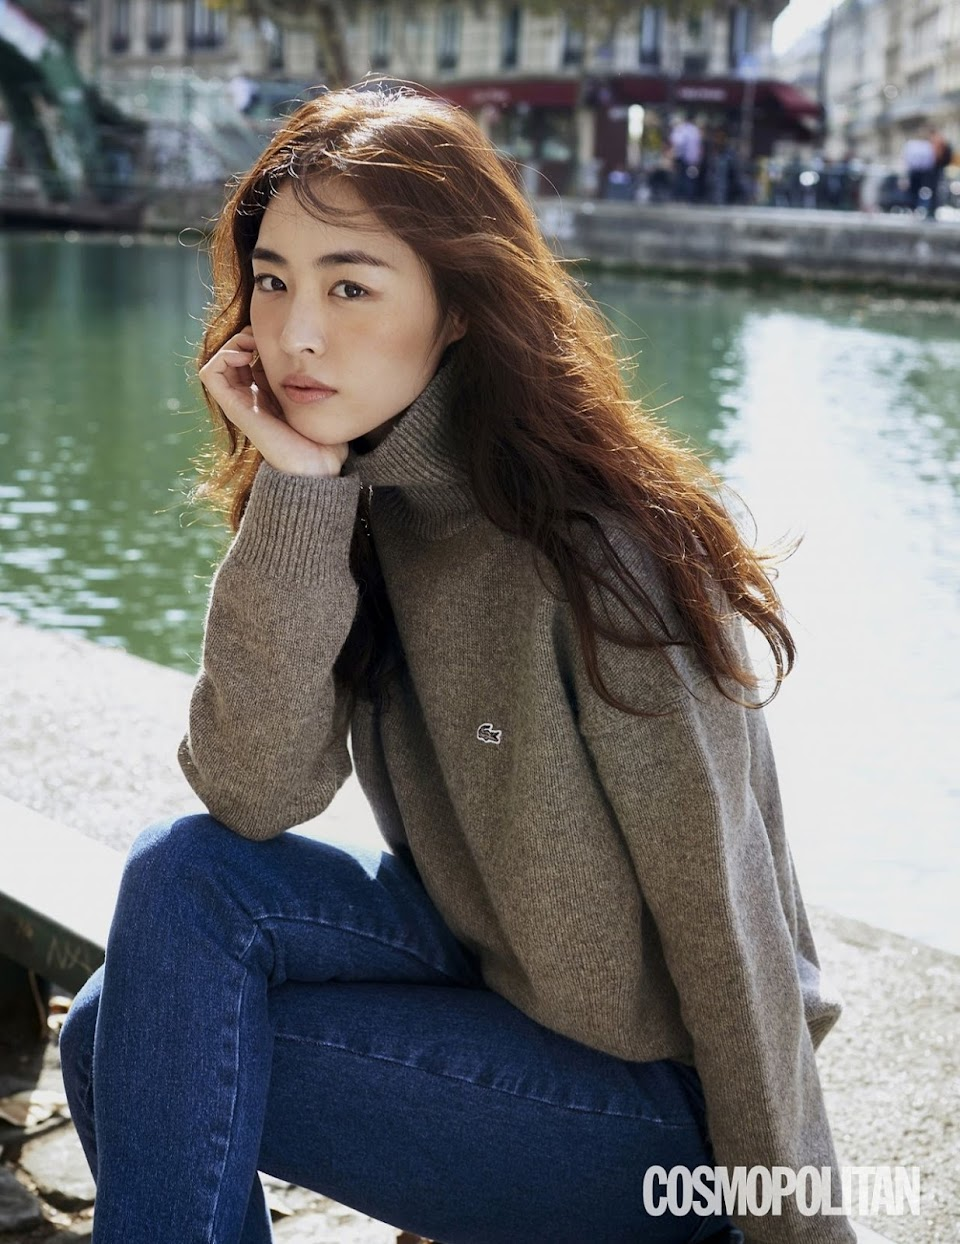 lee-yeon-hee-cosmopolitan-korea-december-2018-8